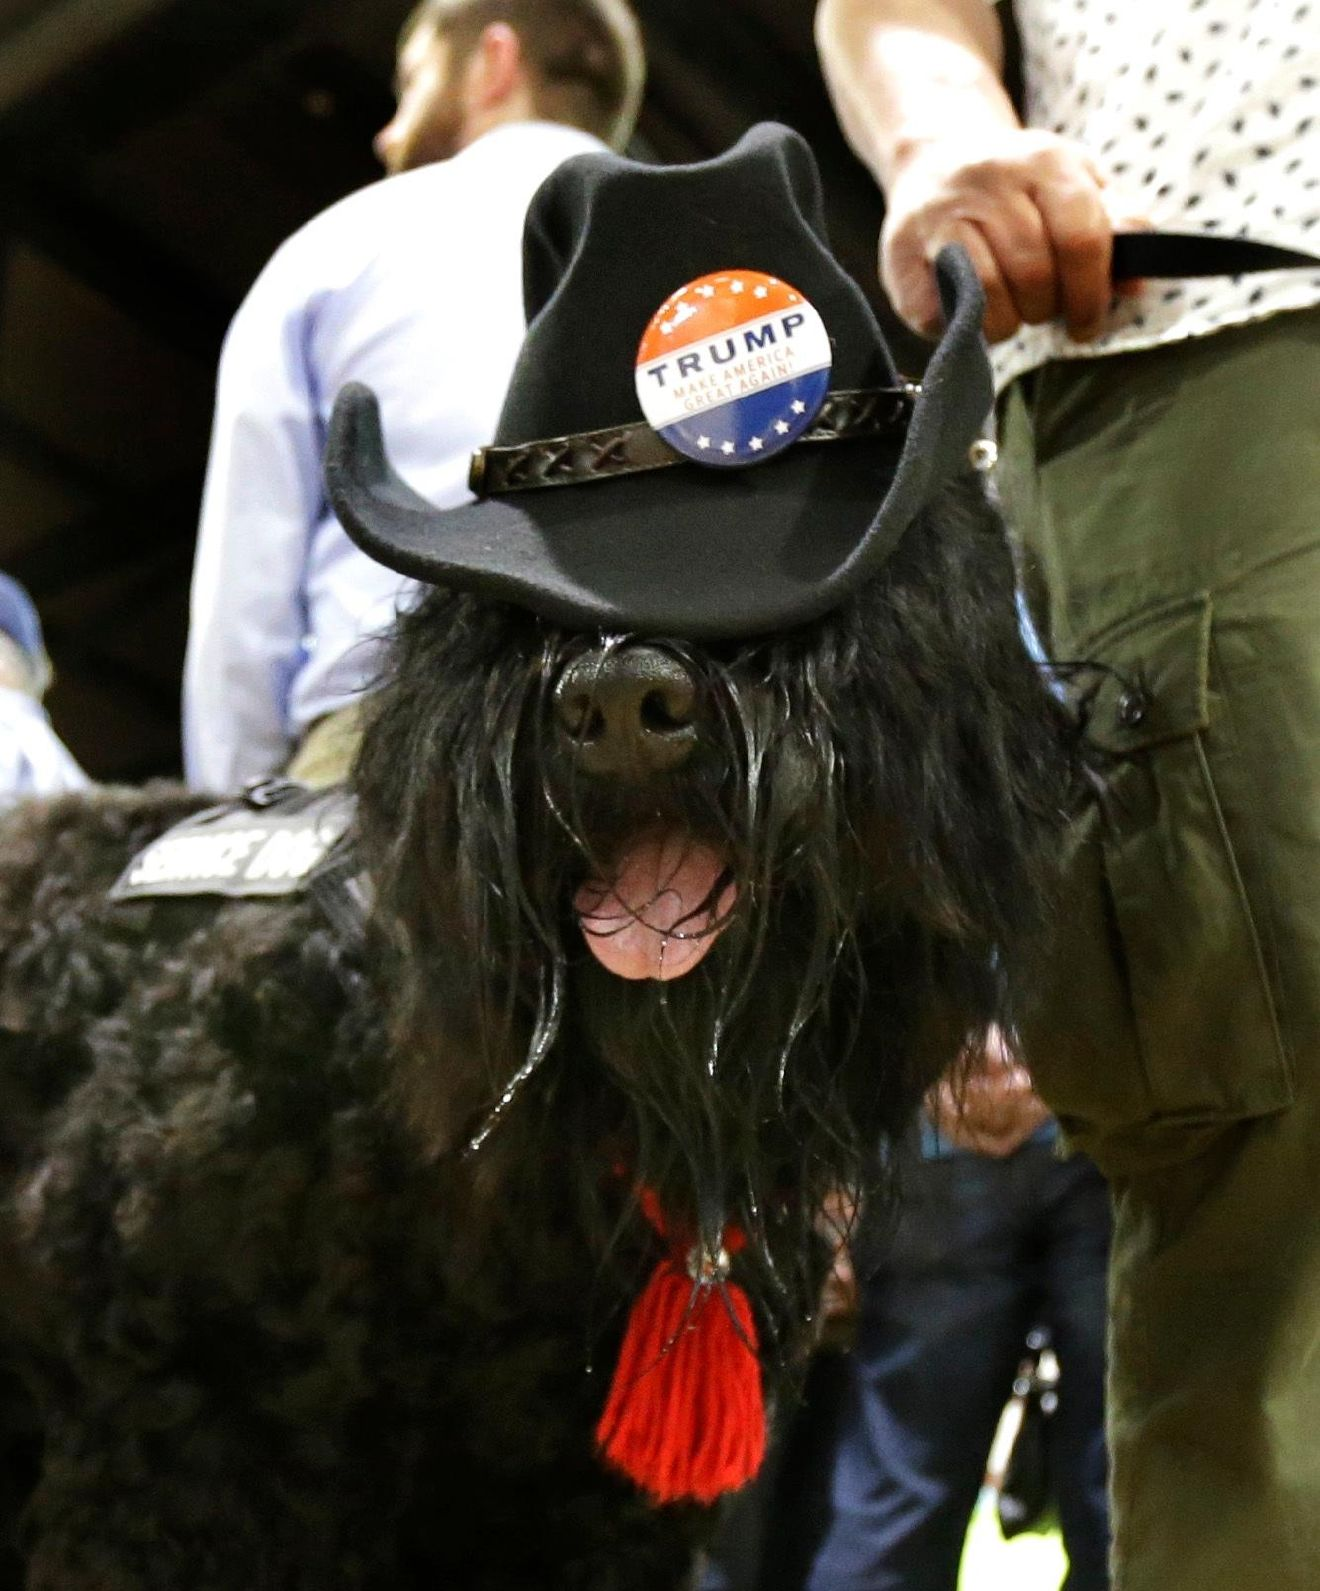 """Monster,"" a service dog that belongs to Gavin Behr, of Hood River, Ore., wears a cowboy hat with a Donald Trump button before the start of a rally for the Republican presidential candidate in Eugene, Ore., Friday, May 6, 2016. (AP Photo/Ted S. Warren)"